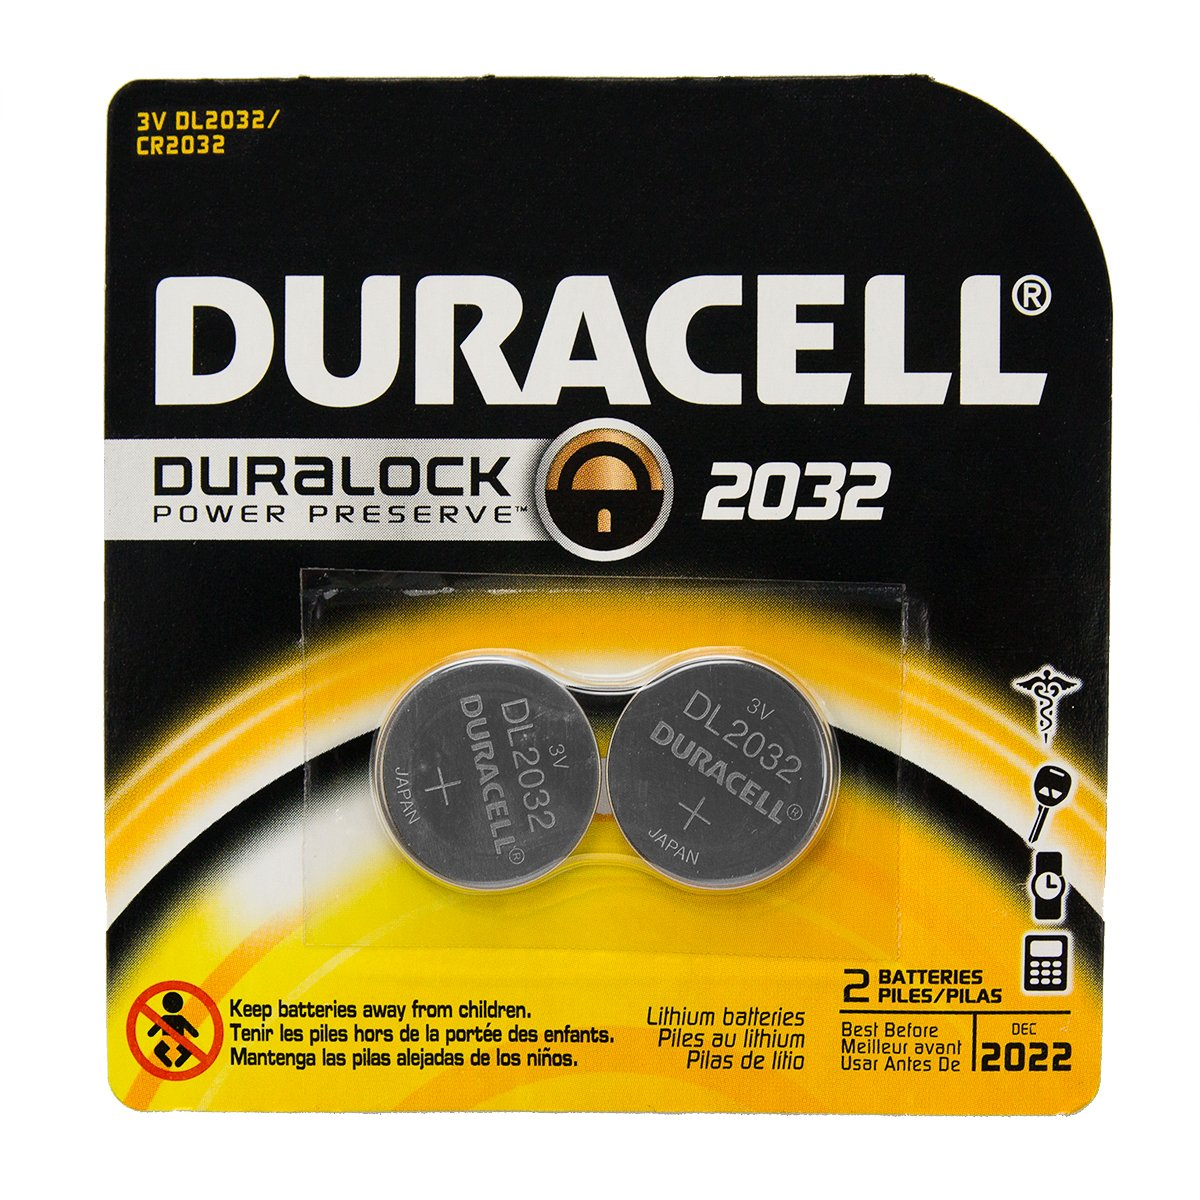 12 Duracell DL2032 Duralock Lithium Batteries Cell Button Electronics (2x6) 81AeBq-Y2jL